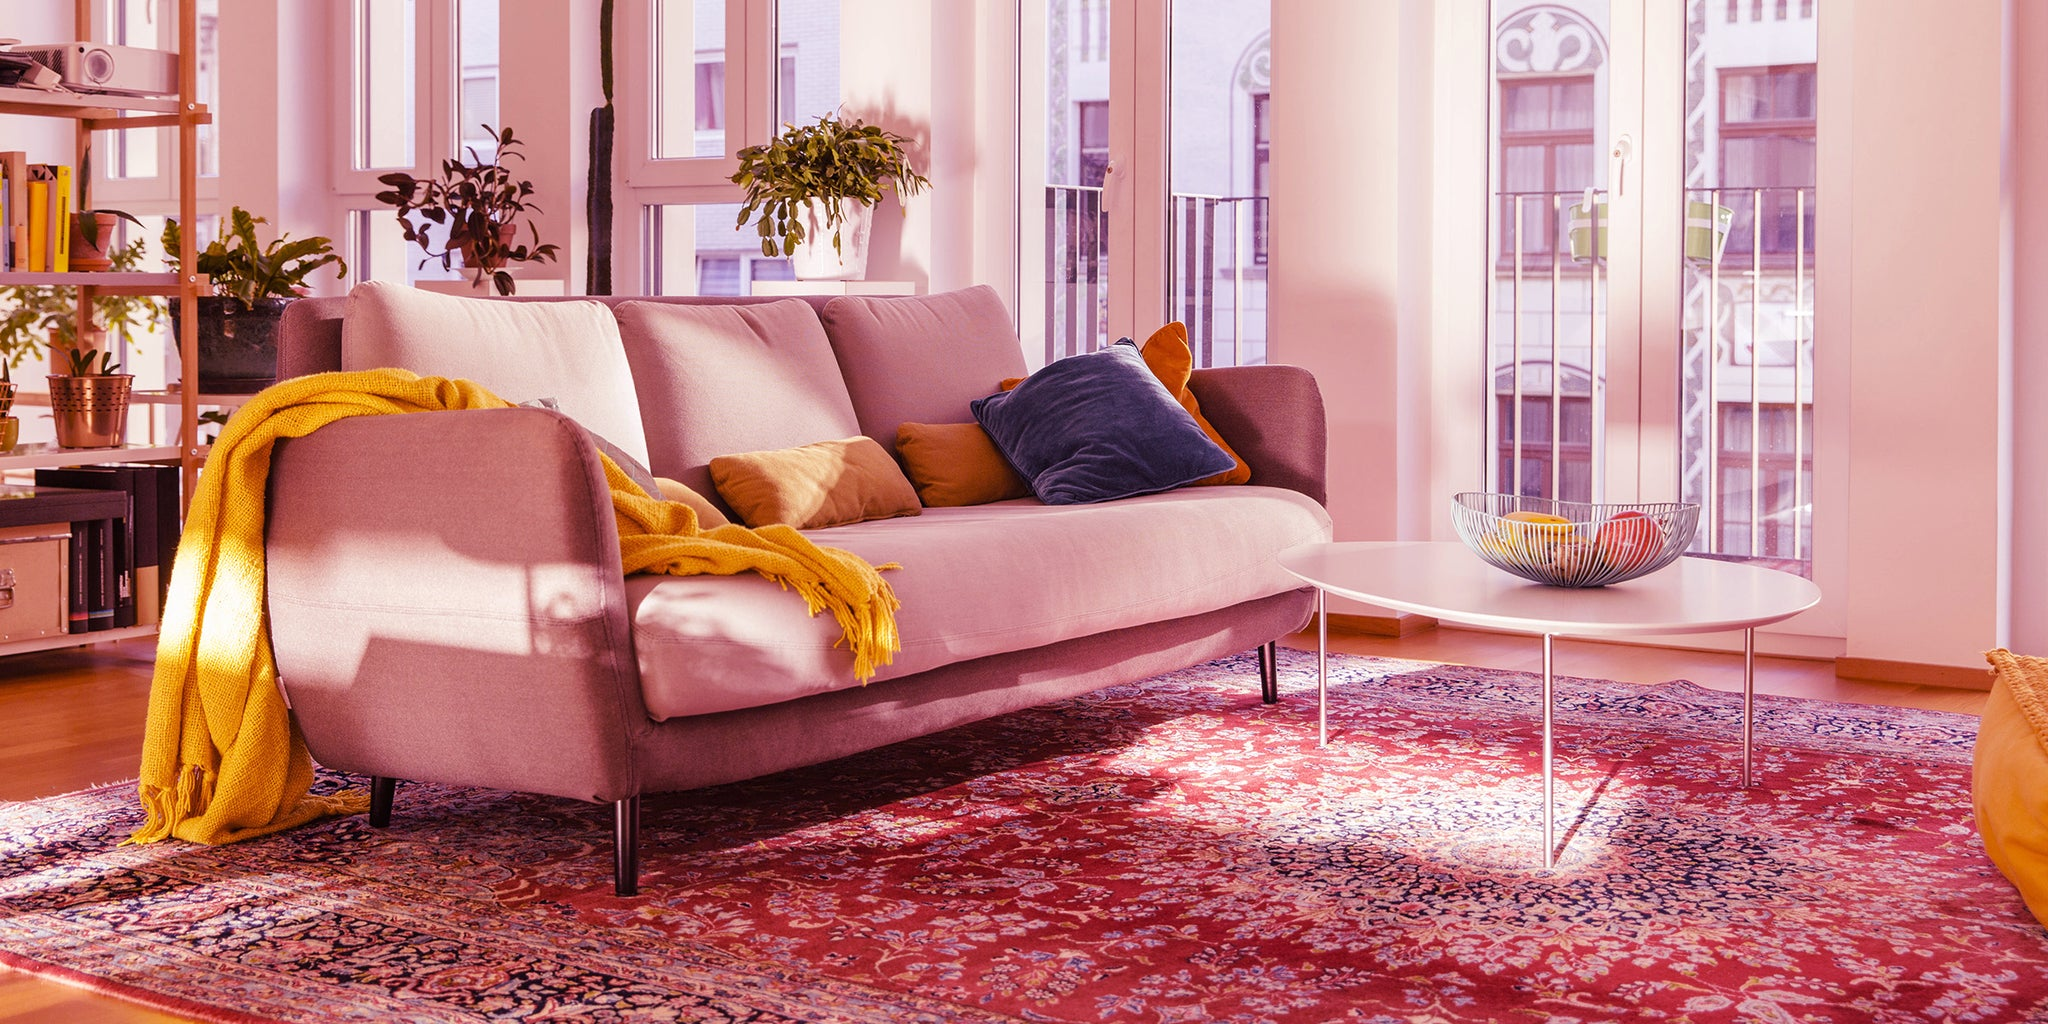 Tips to Decorate With Rugs